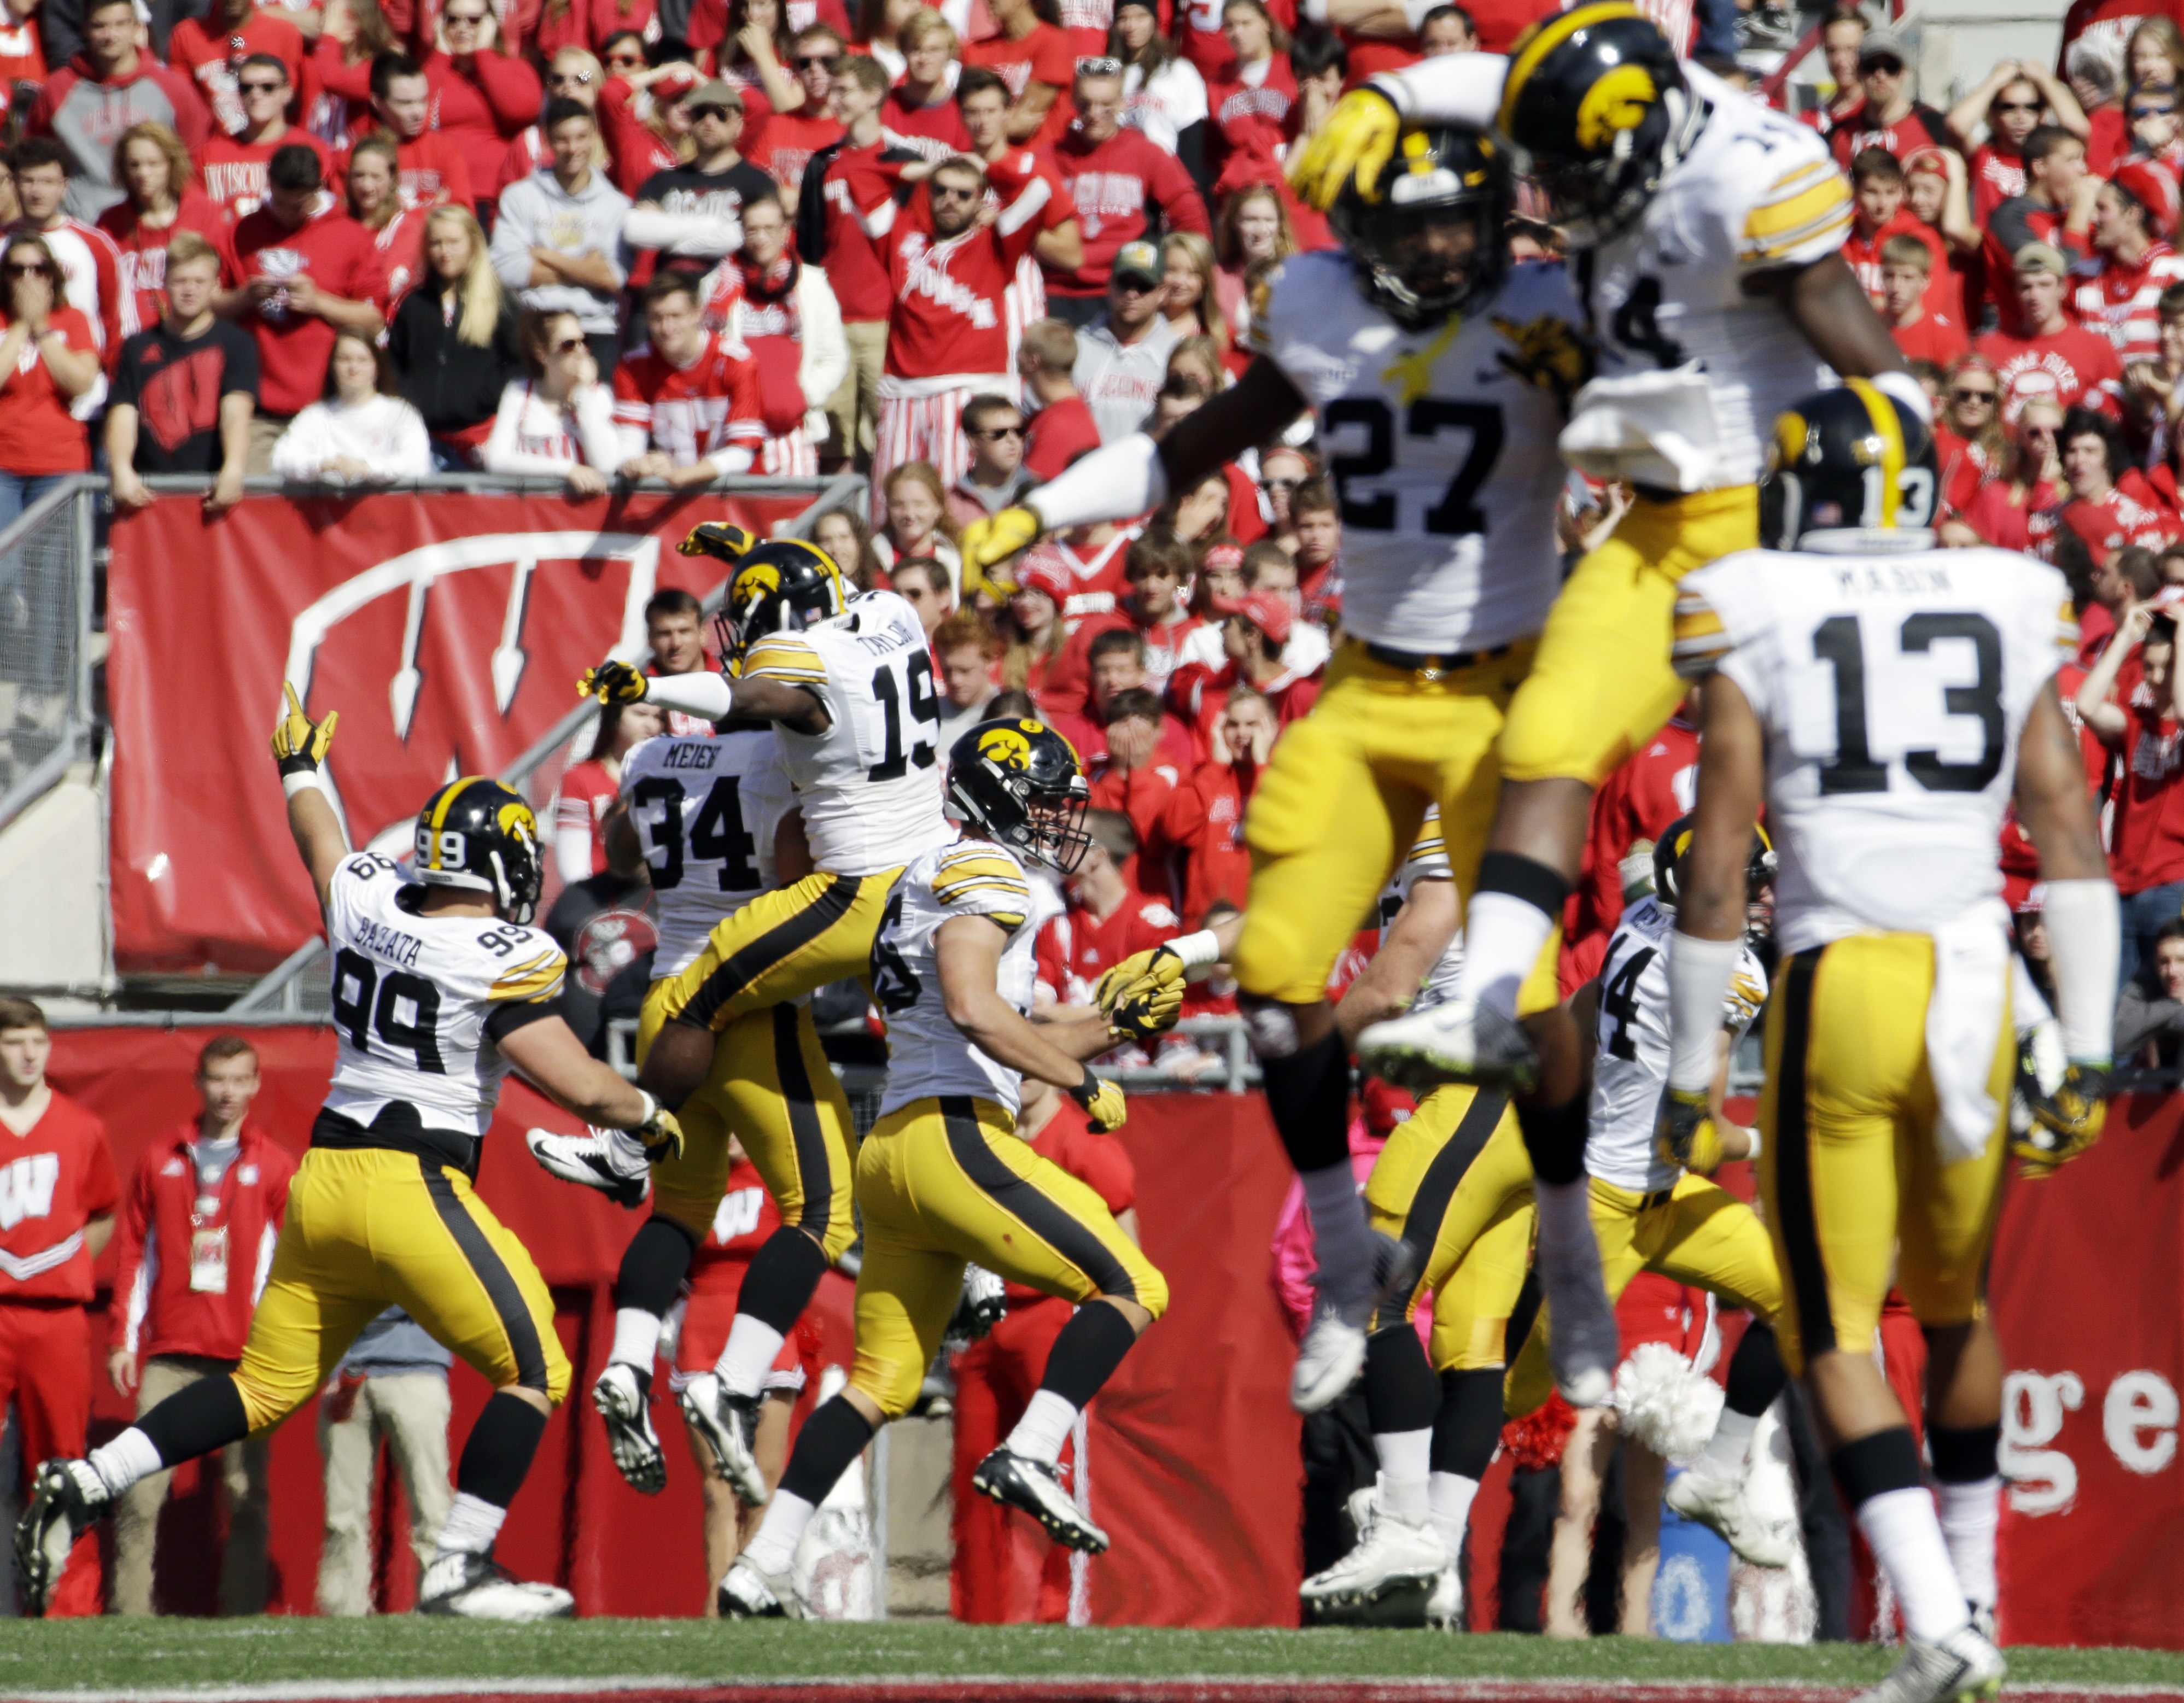 Iowa players celebrate after recovering a fumble during the first half of an NCAA college football game against Wisconsinm Saturday, Oct. 3, 2015, in Madison, Wis. (AP Photo/Morry Gash)